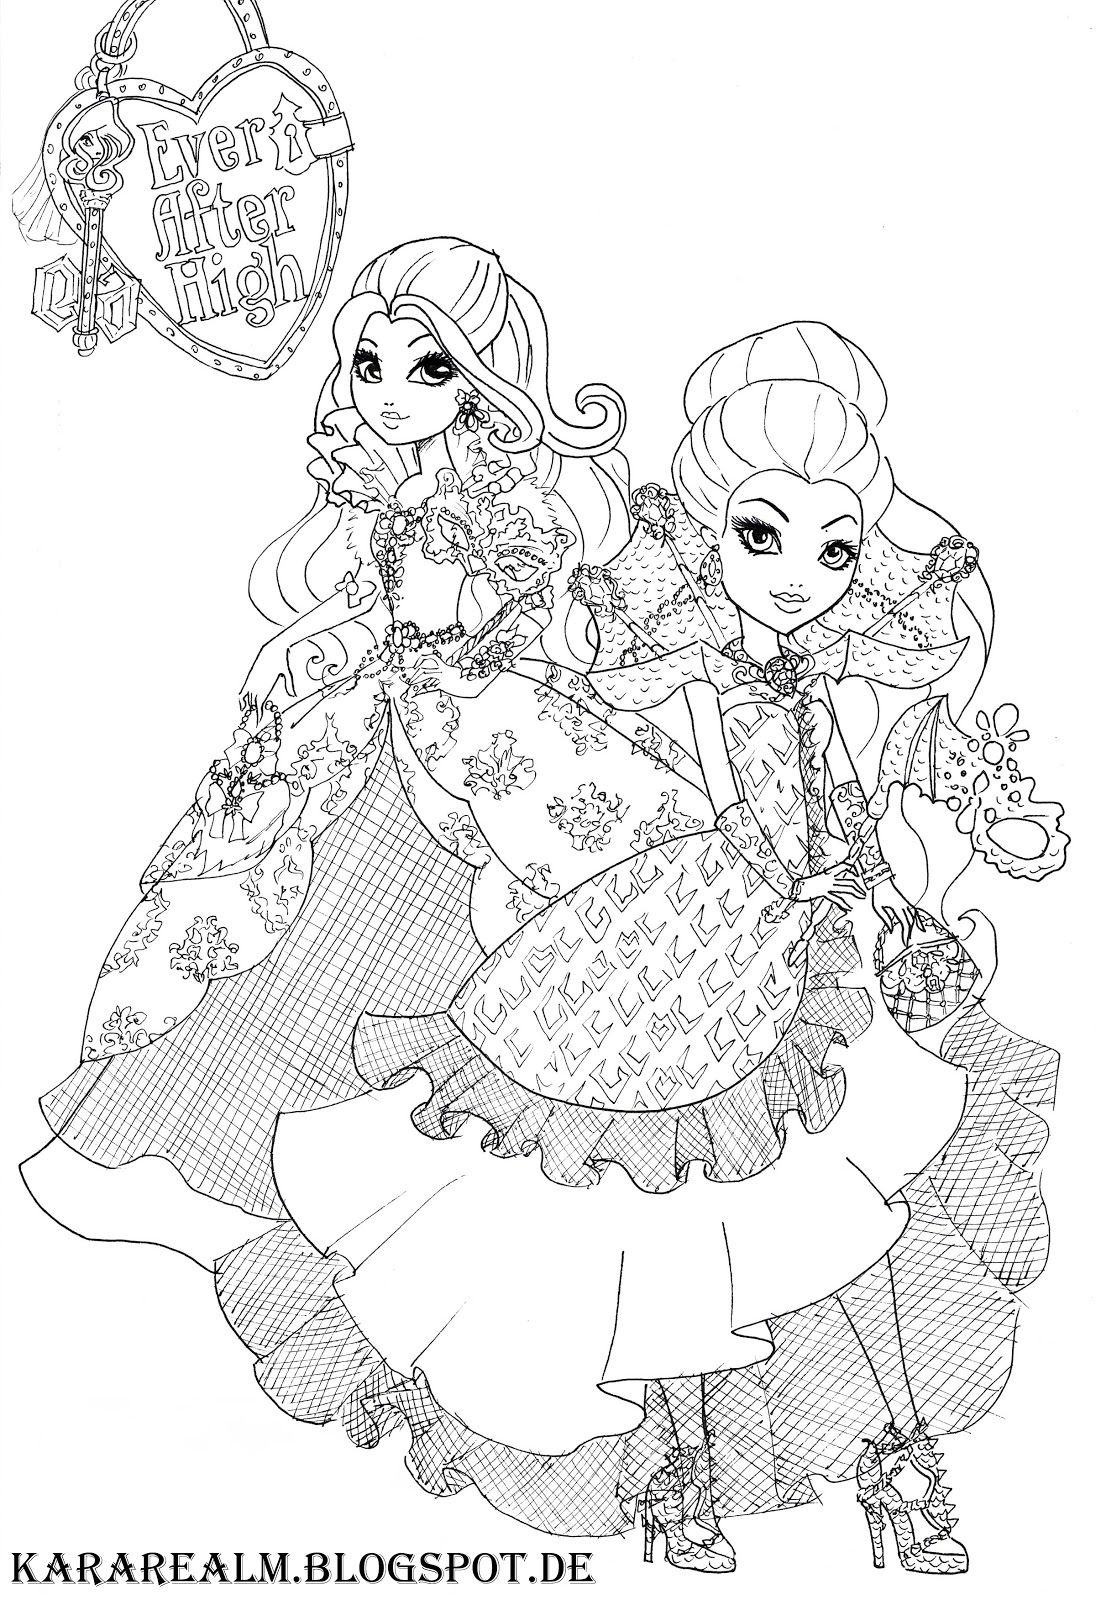 kara realm ever after high coloring pages coloring pages